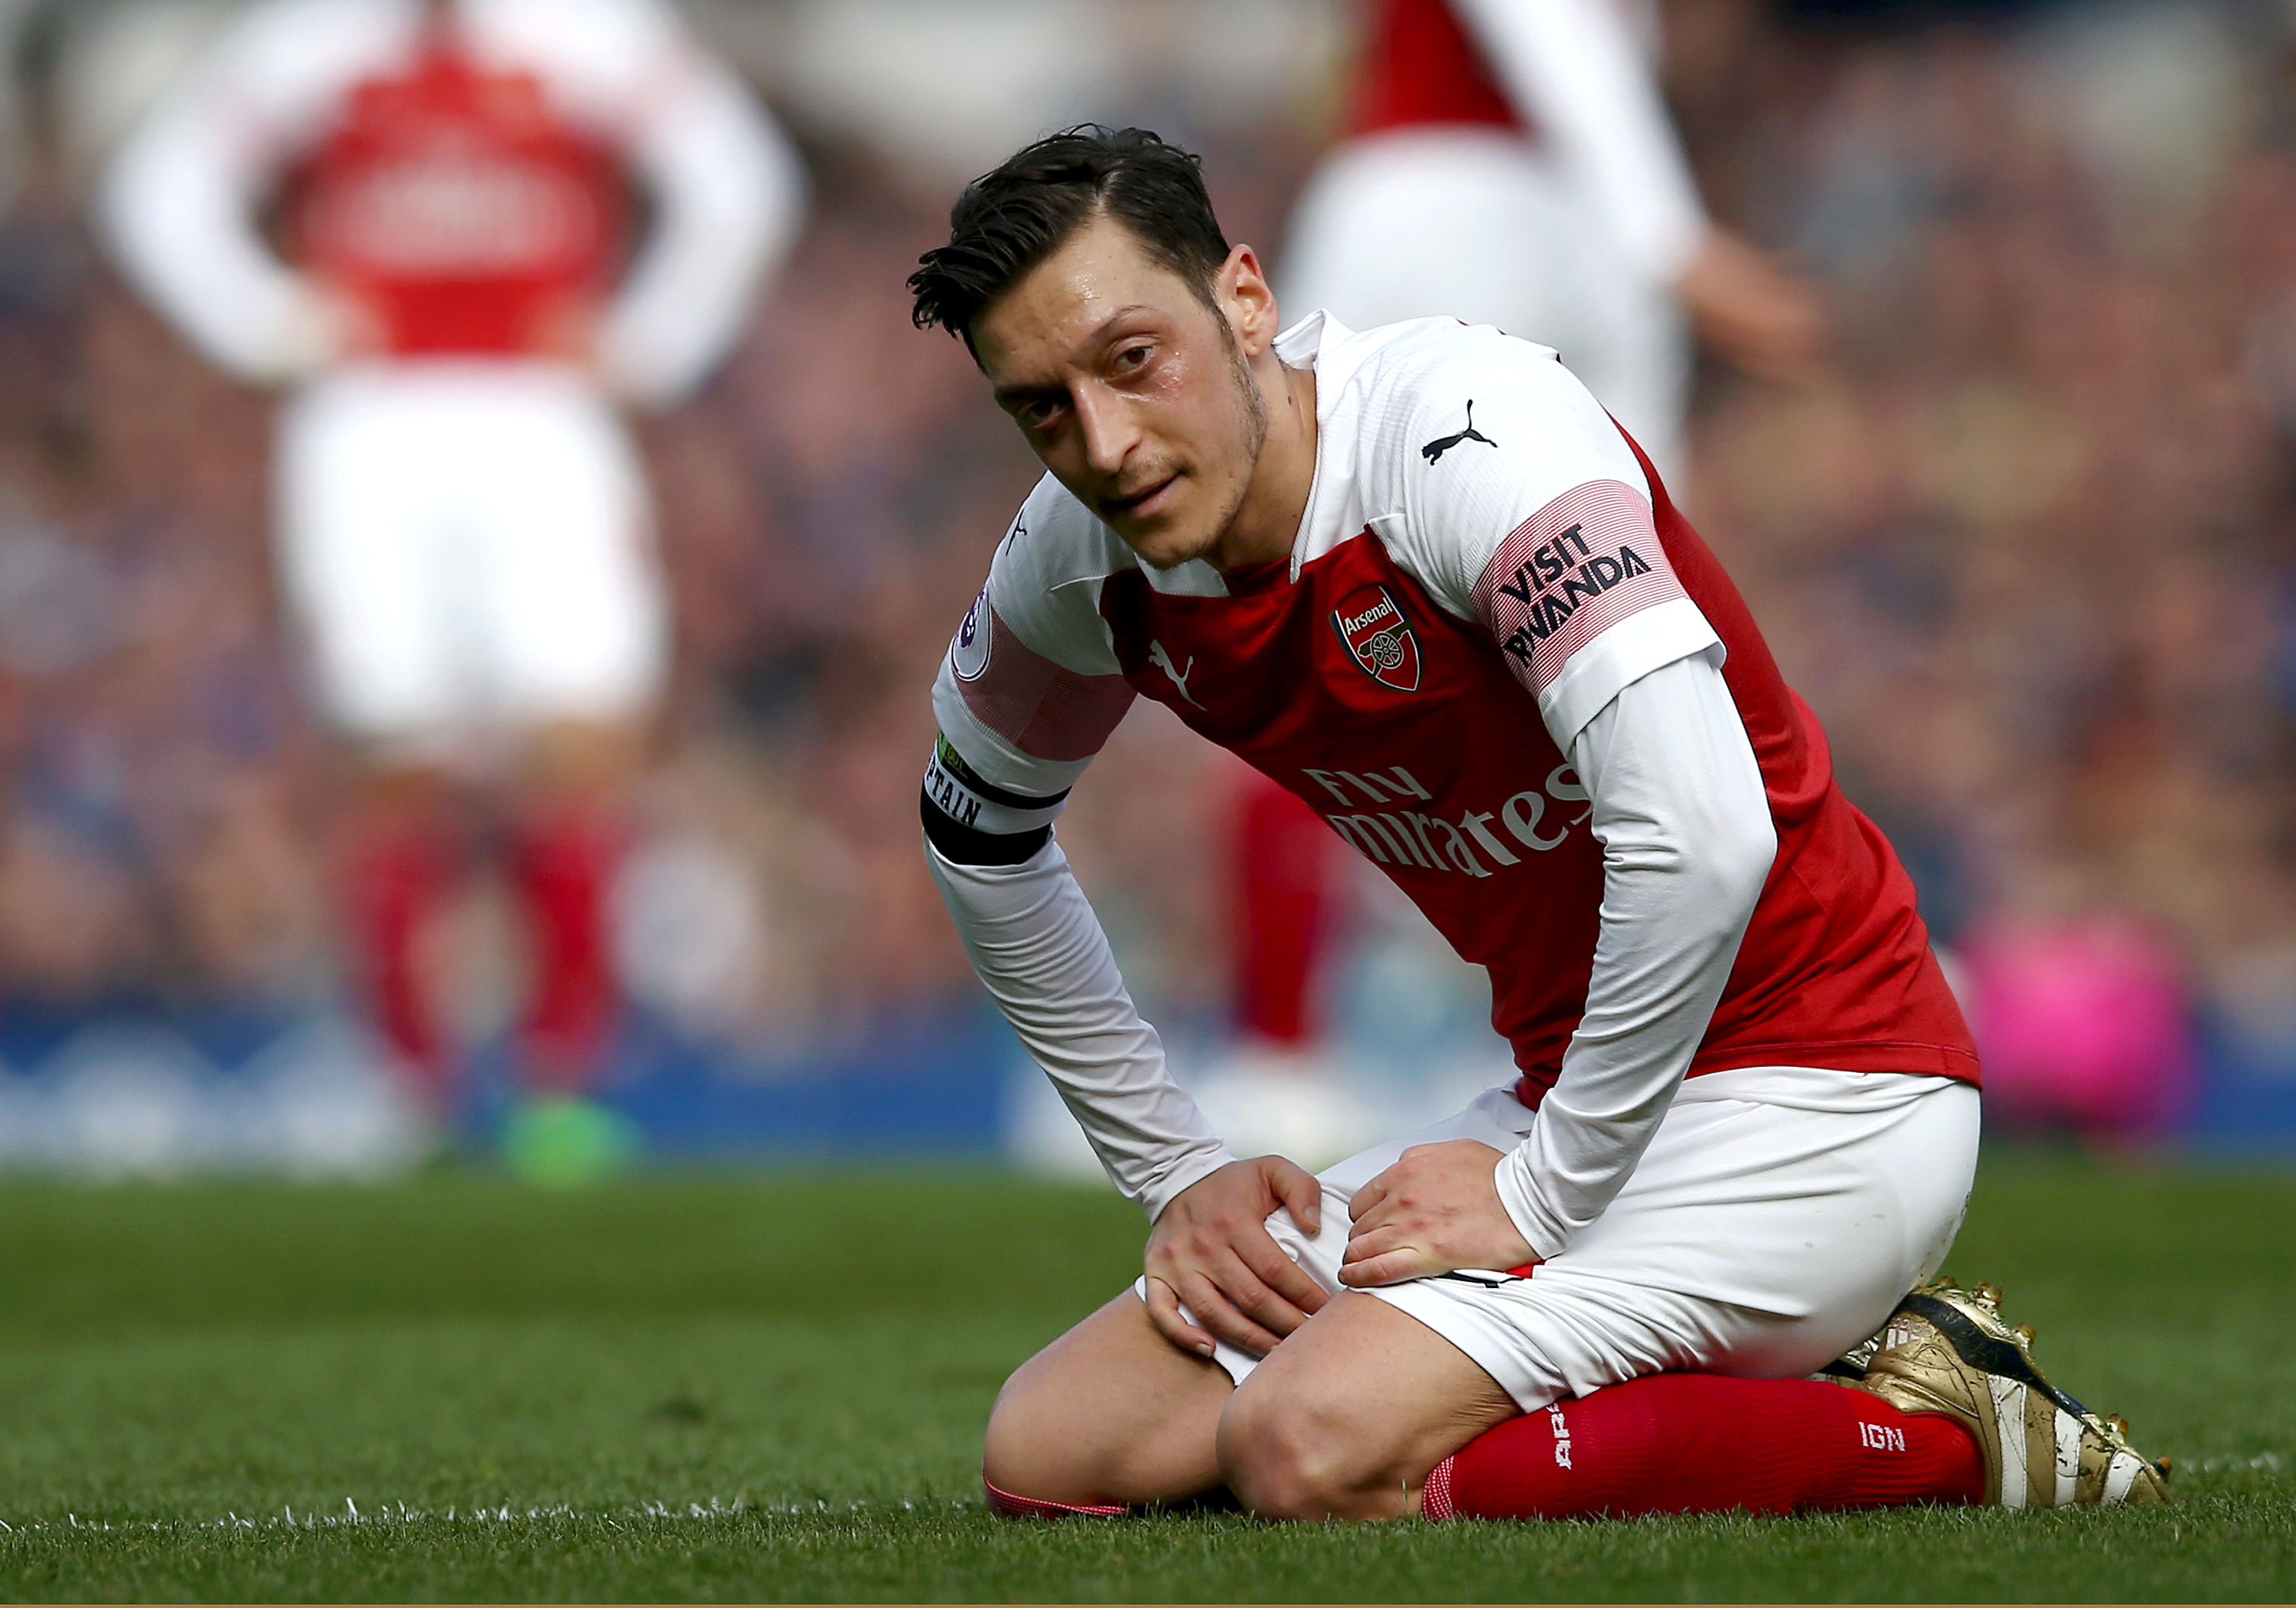 Chinese state media pulls TV coverage of Arsenal game after Mesut Ozil shows Uyghur support